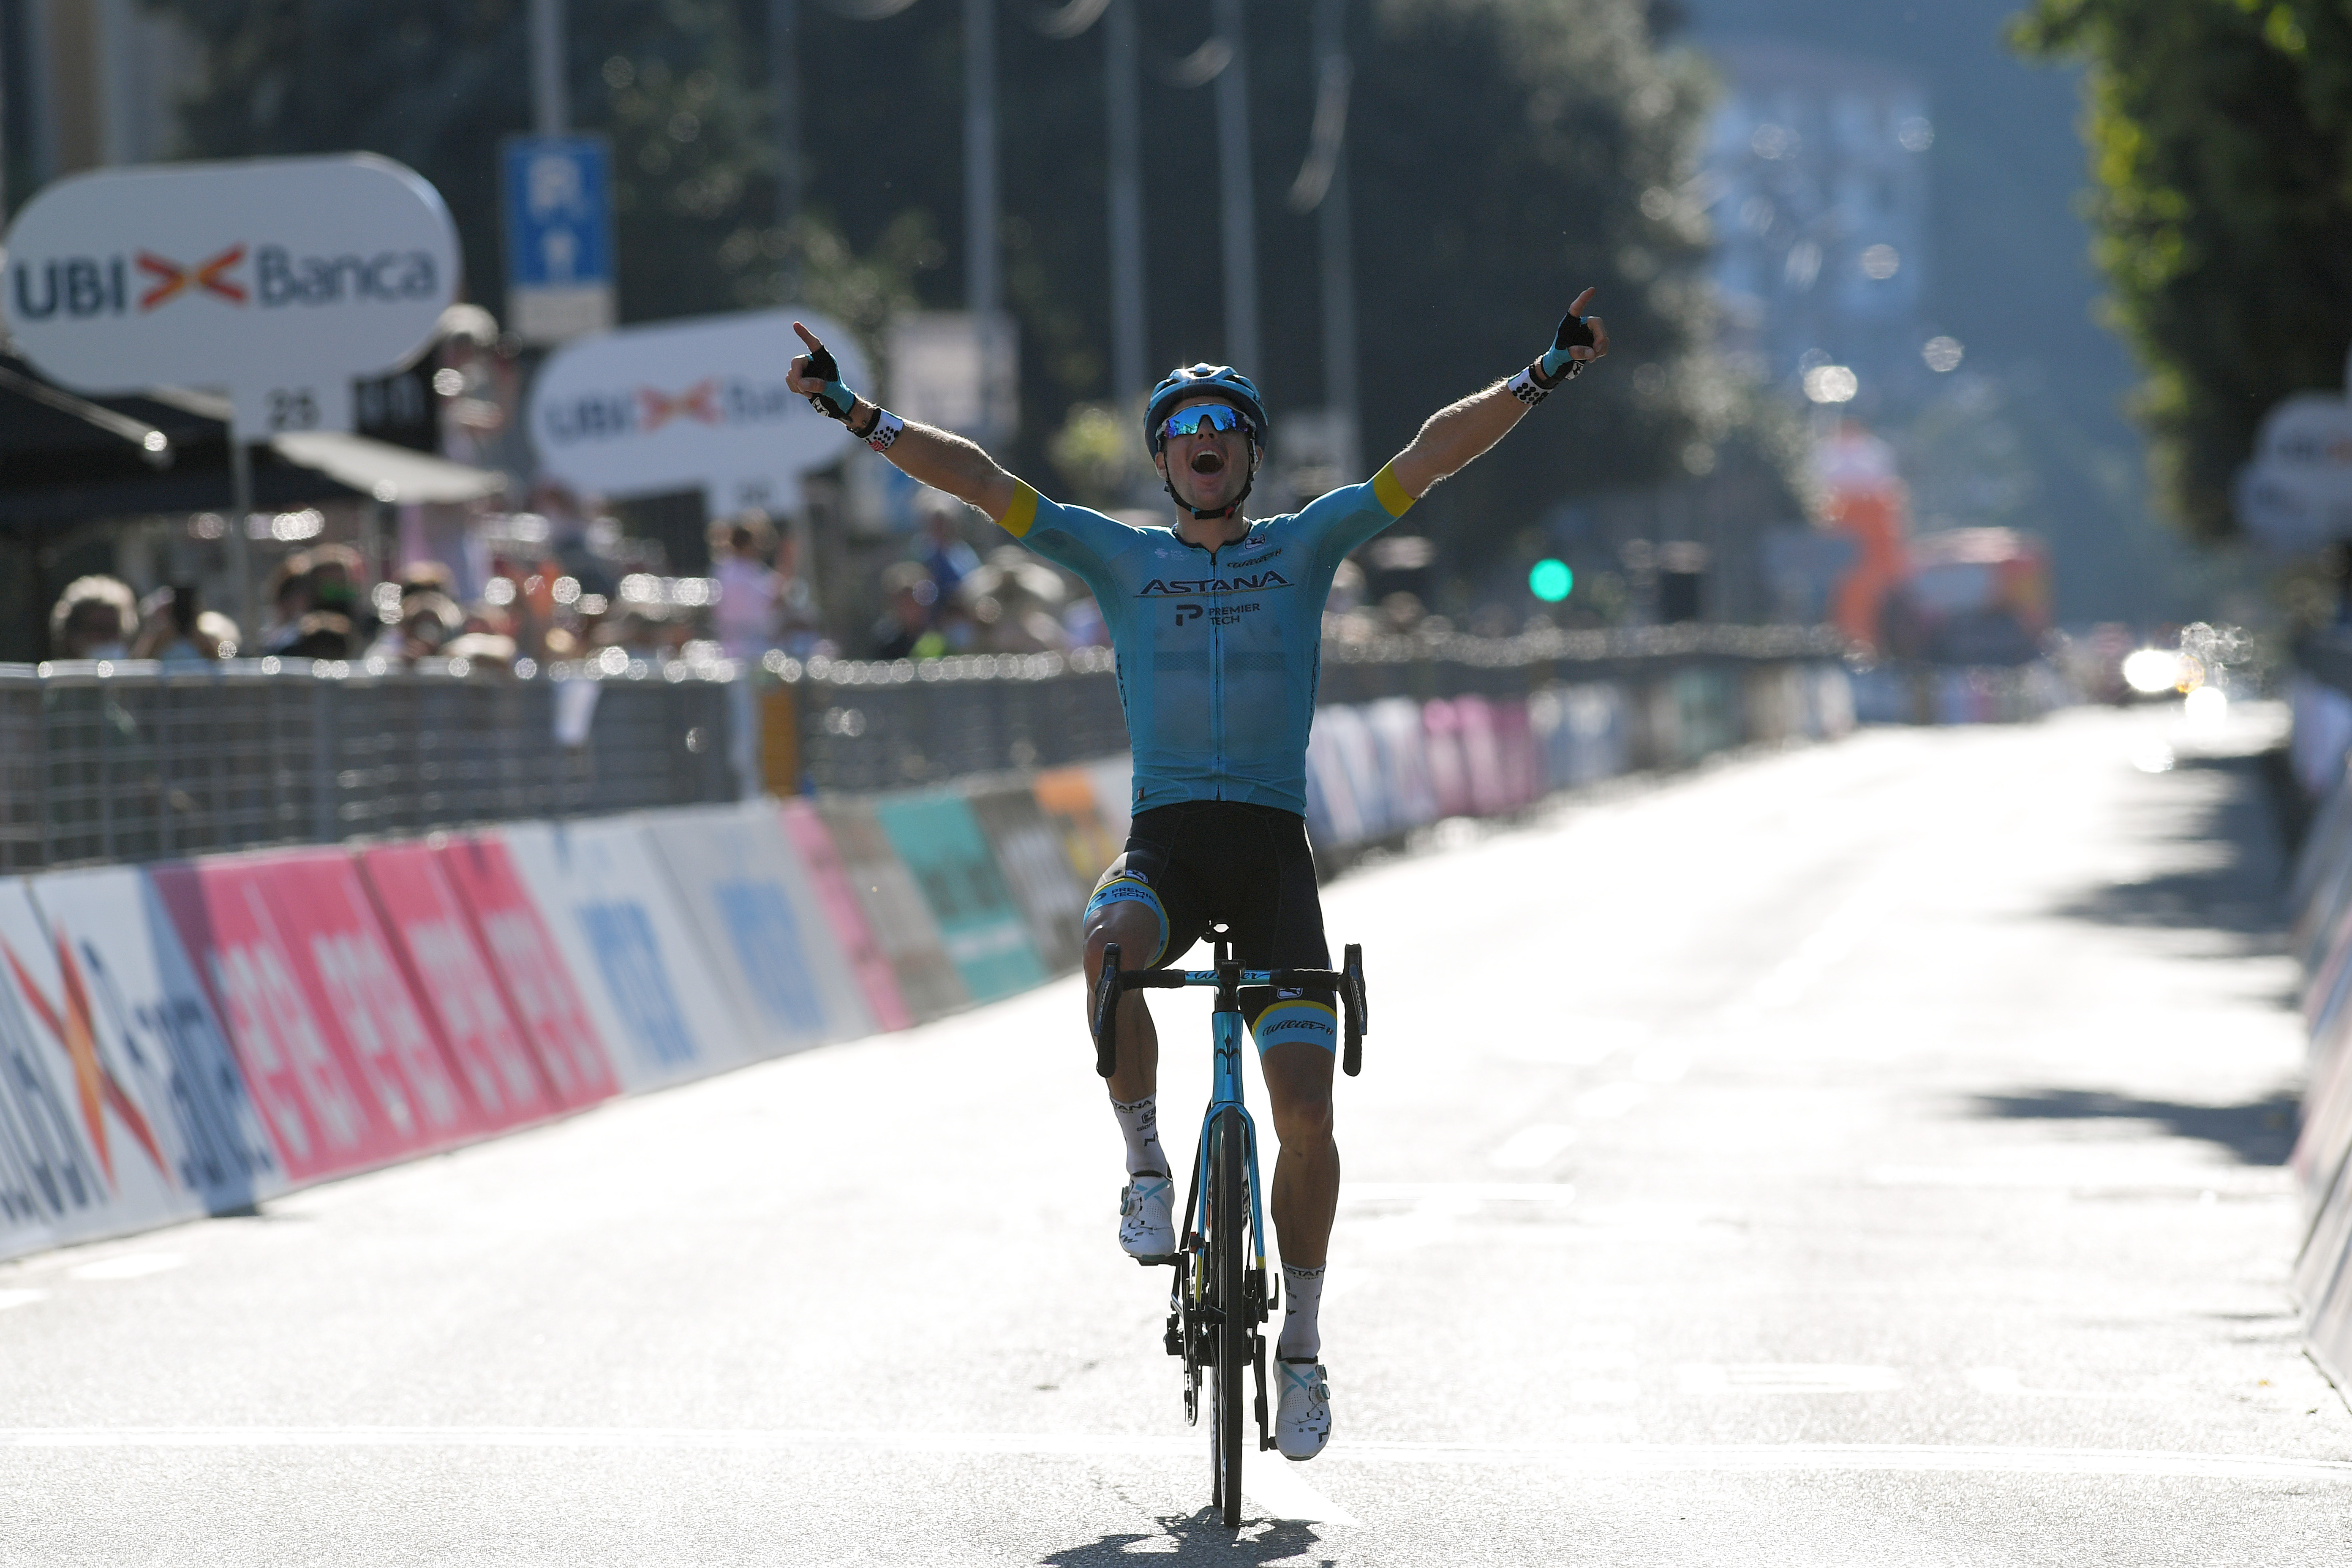 COMO ITALY AUGUST 15 Arrival Jakob Fuglsang of Denmark and Astana Pro Team Celebration during the 114th Il Lombardia 2020 a 231km race from Bergamo to Como ilombardia IlLombardia on August 15 2020 in Como Italy Photo by Tim de WaeleGetty Images